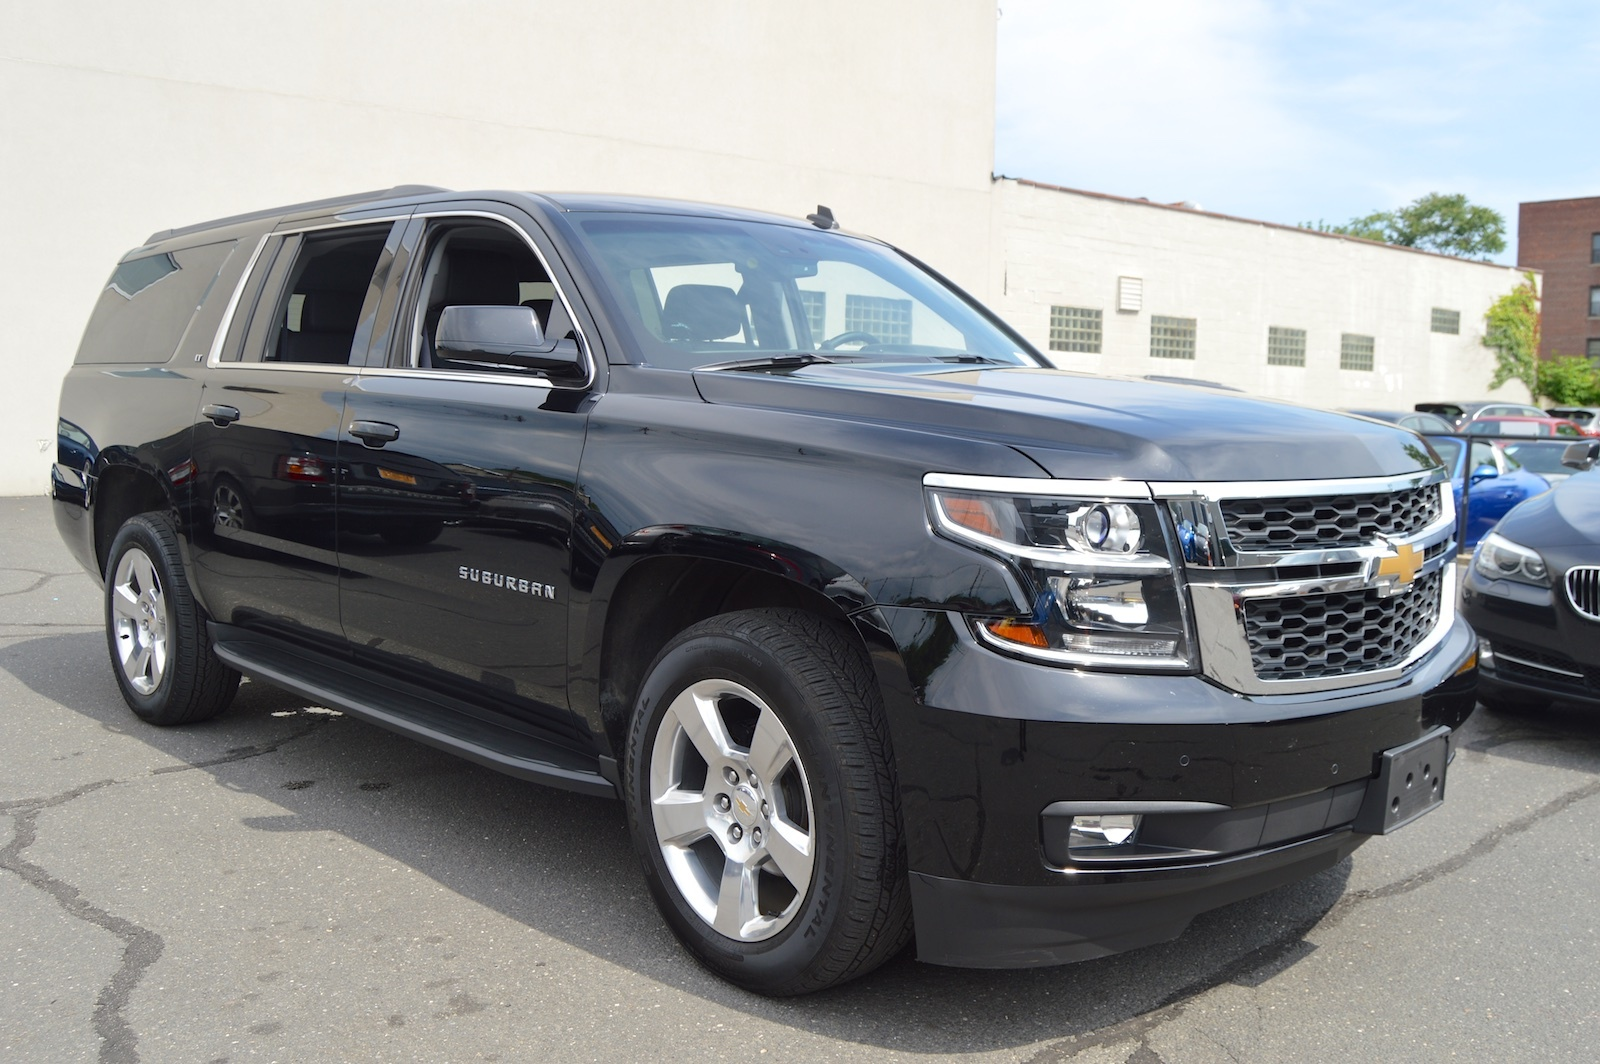 2015 chevrolet suburban lt 4wd for sale buy aircrafts. Black Bedroom Furniture Sets. Home Design Ideas